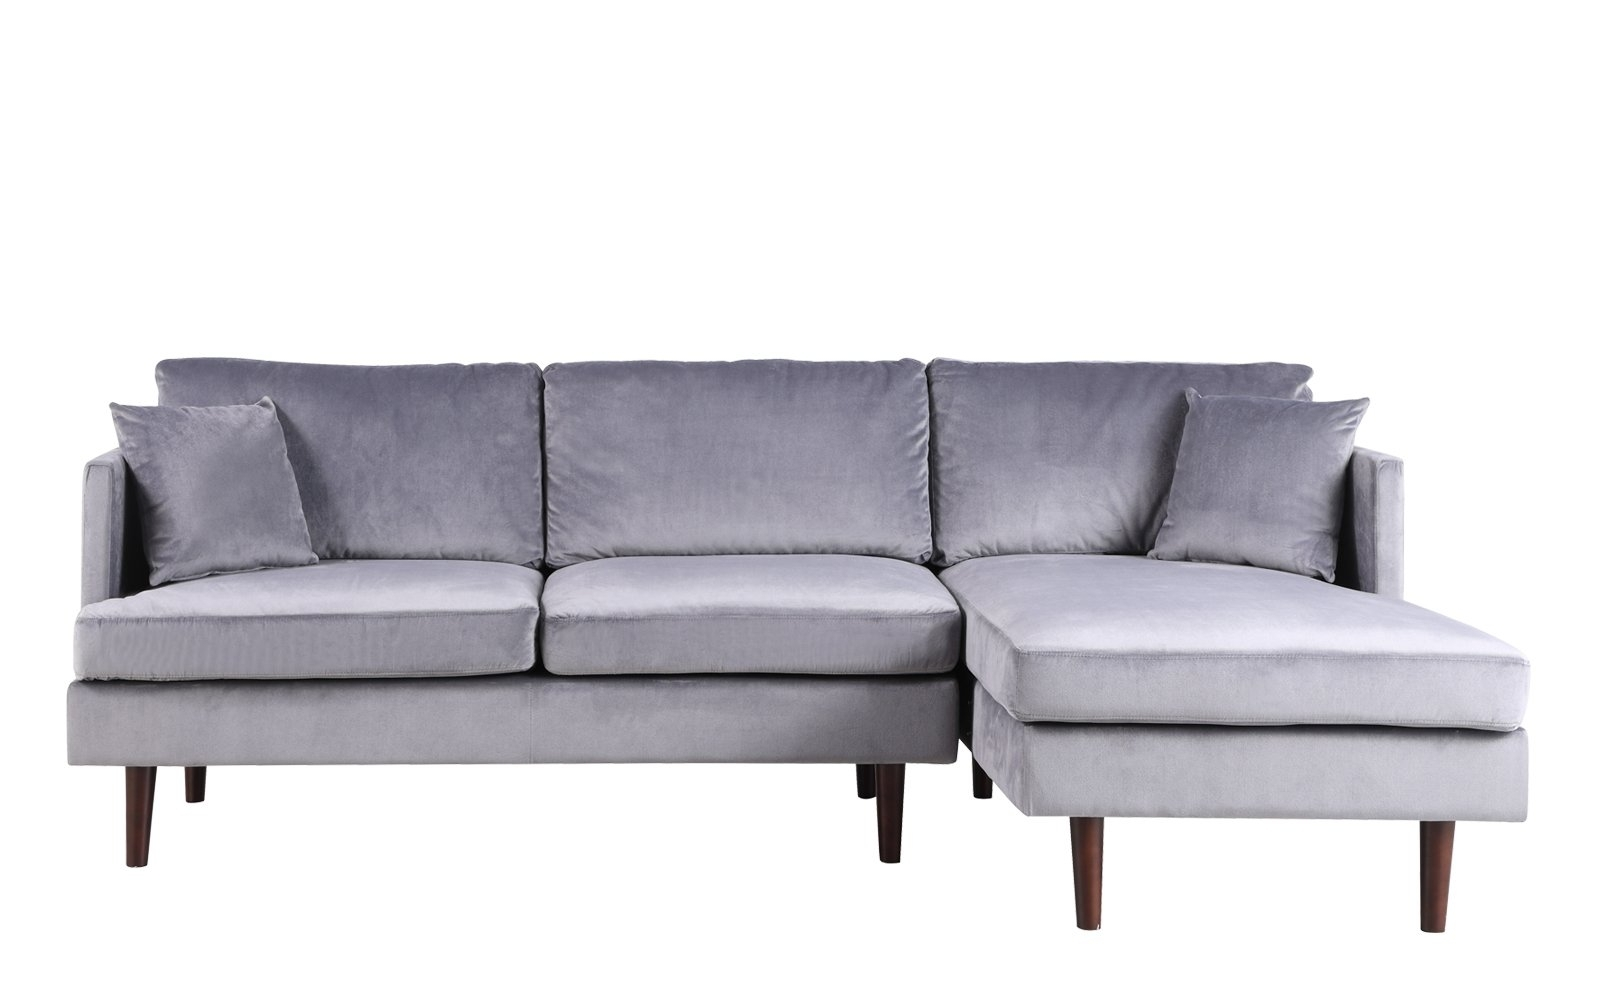 Jovanni Modern Art Deco Jewel Tone Microfiber Sectional Sofa | Sala Inside Declan 3 Piece Power Reclining Sectionals With Left Facing Console Loveseat (Image 8 of 25)